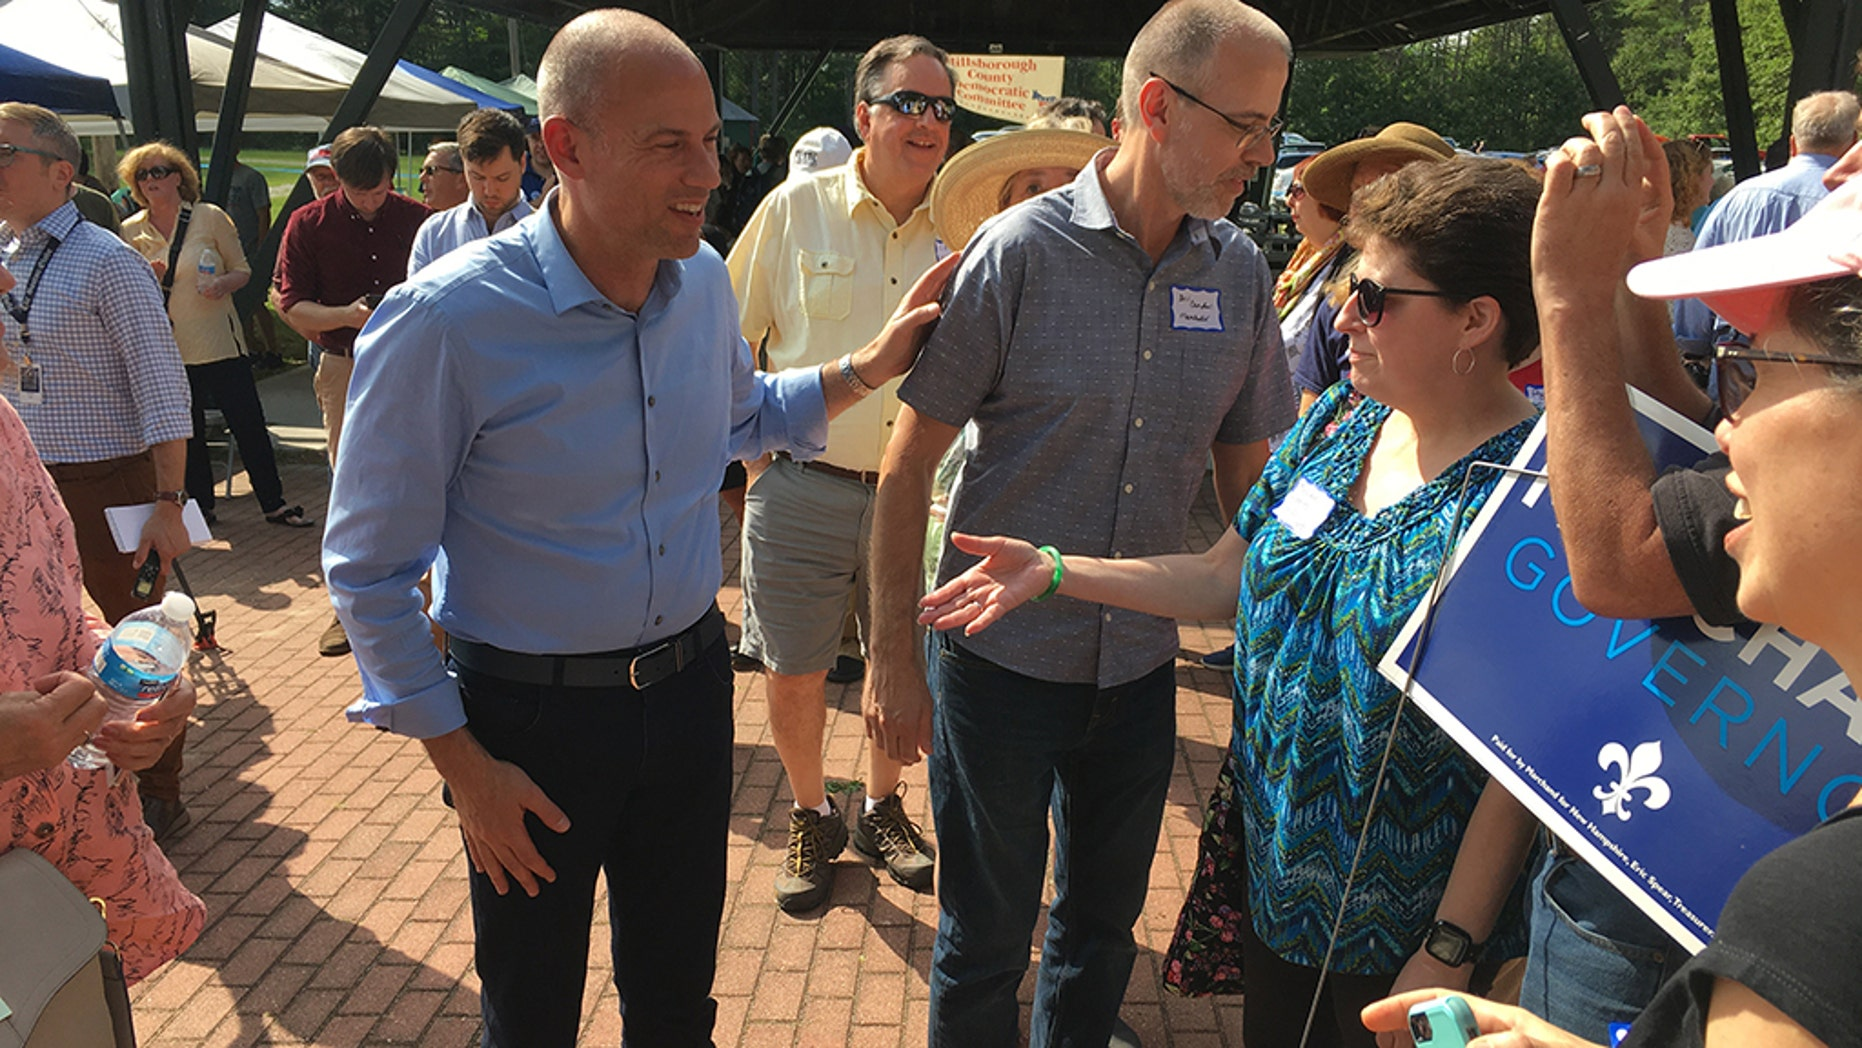 Michael Avenatti headlined a Democratic Party event in Greenfield, New Hampshire.